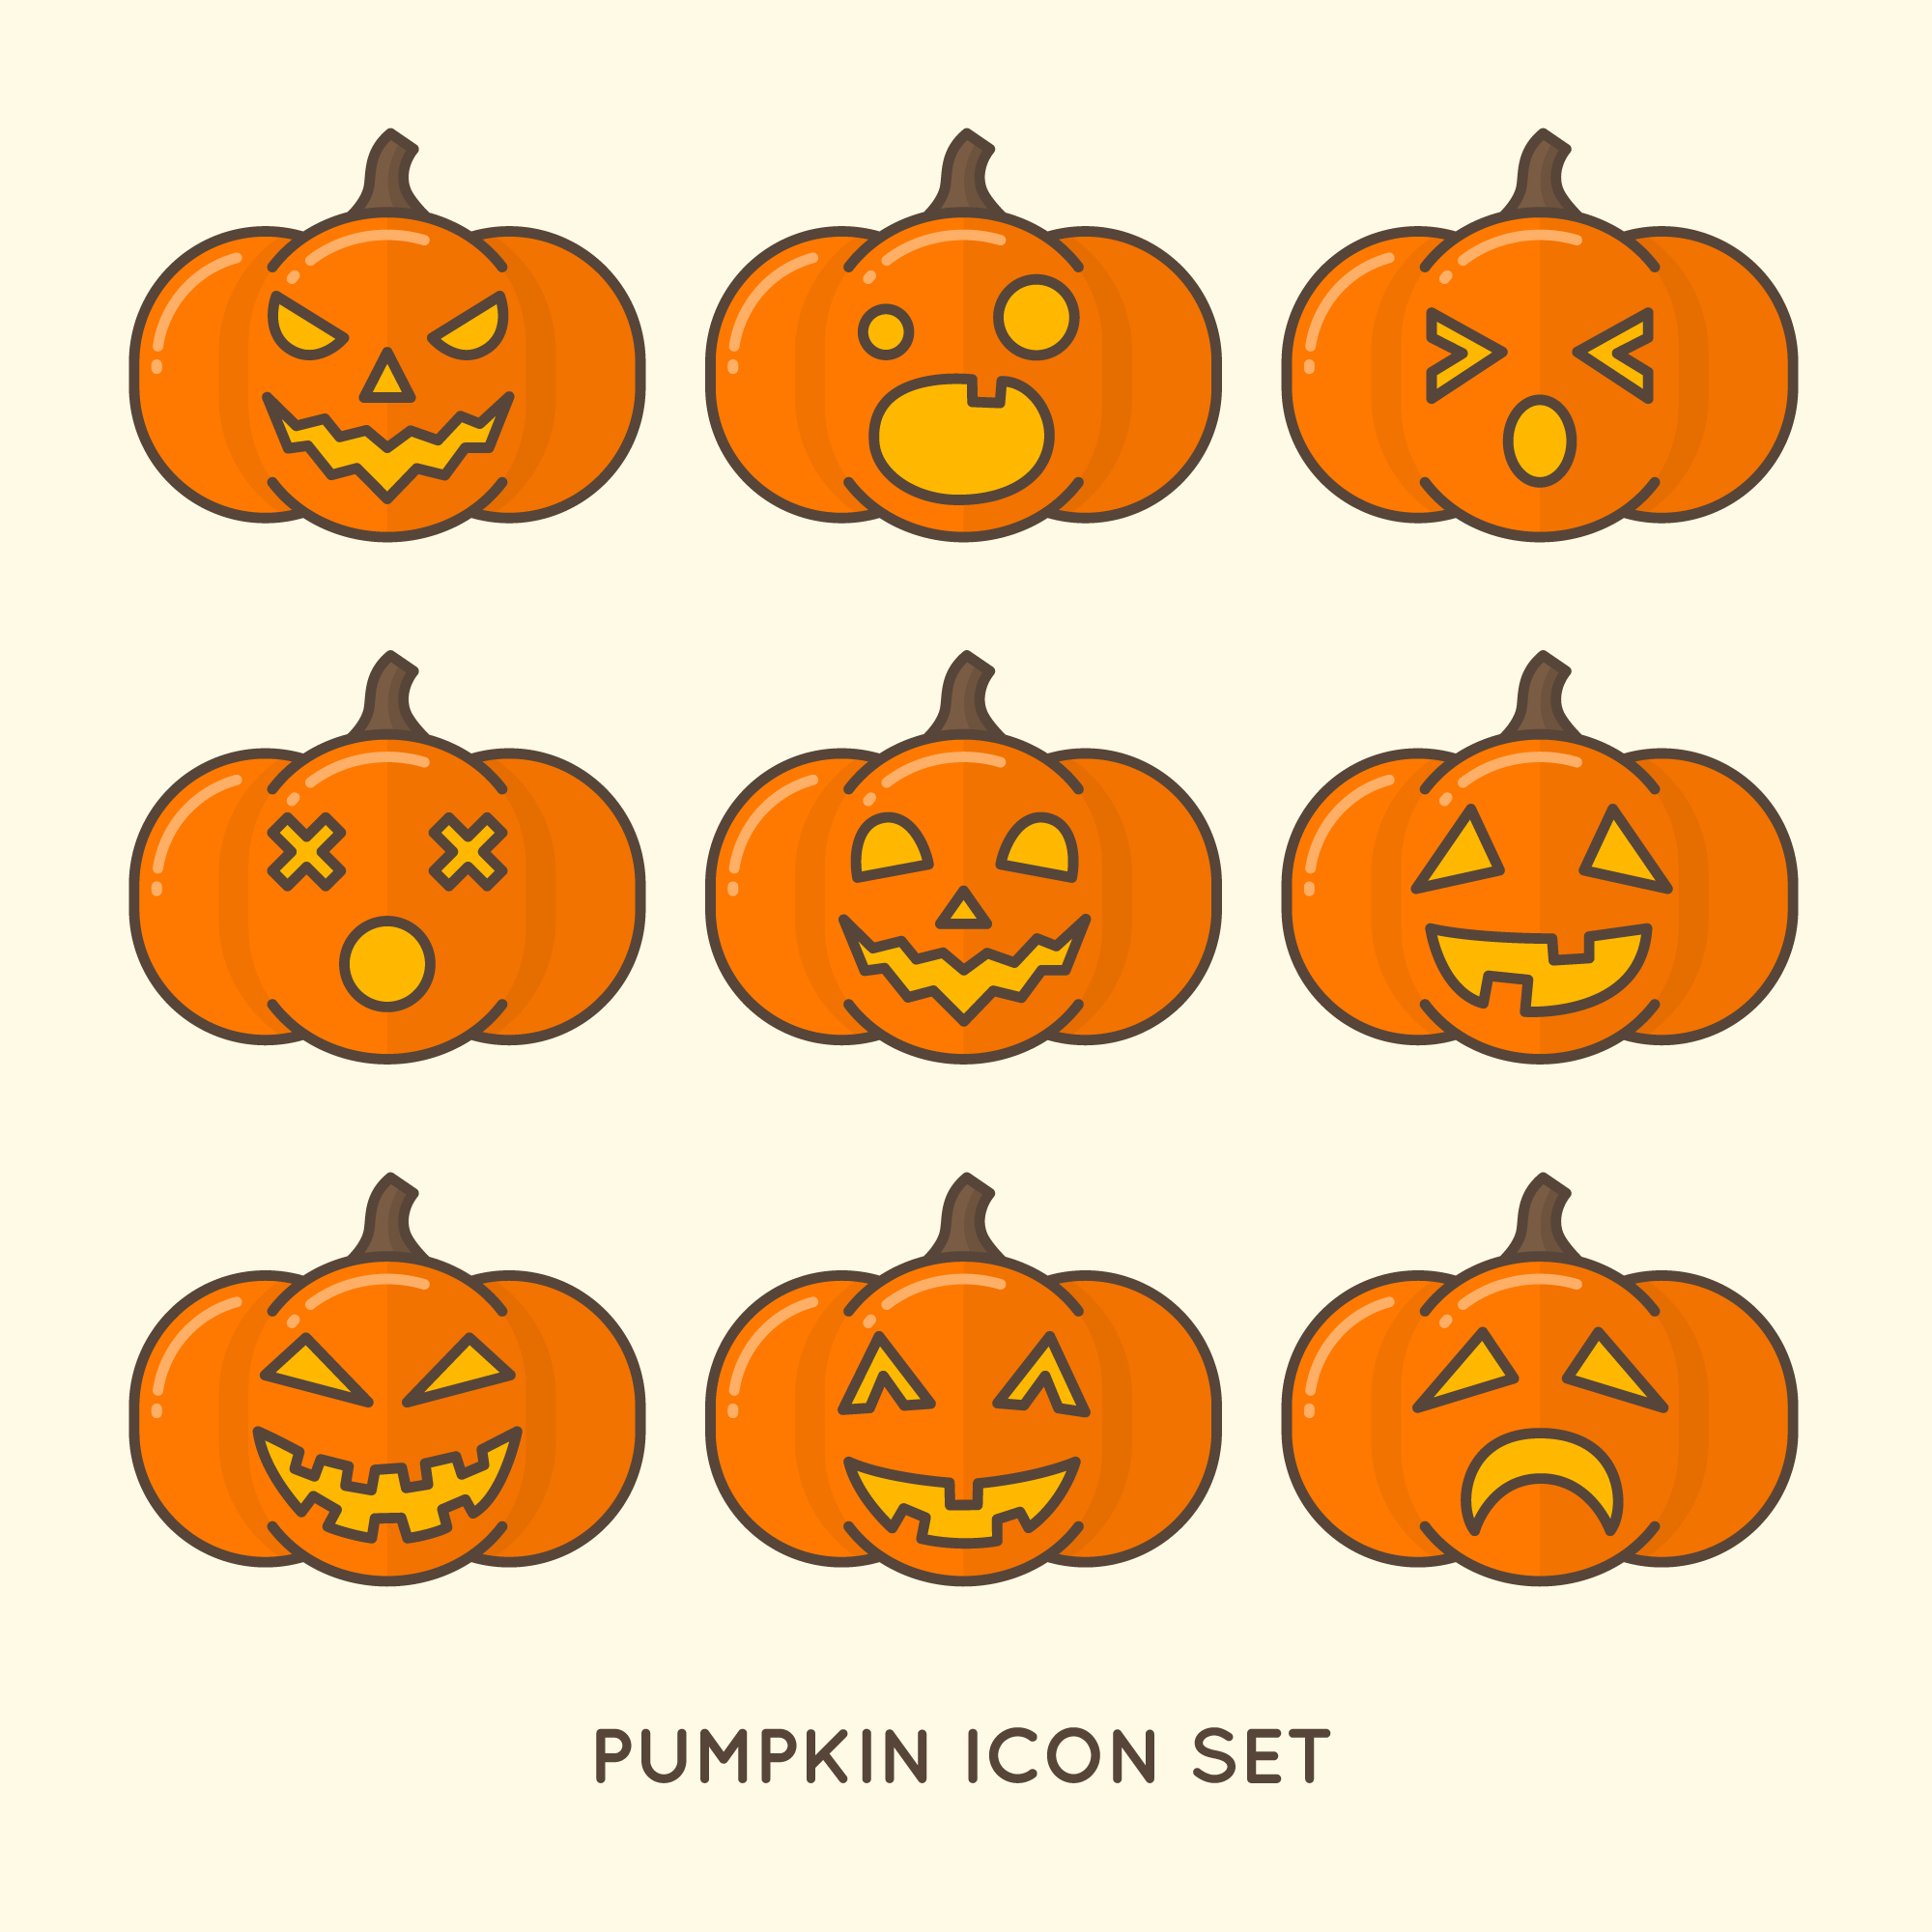 Pumpkin icons collection